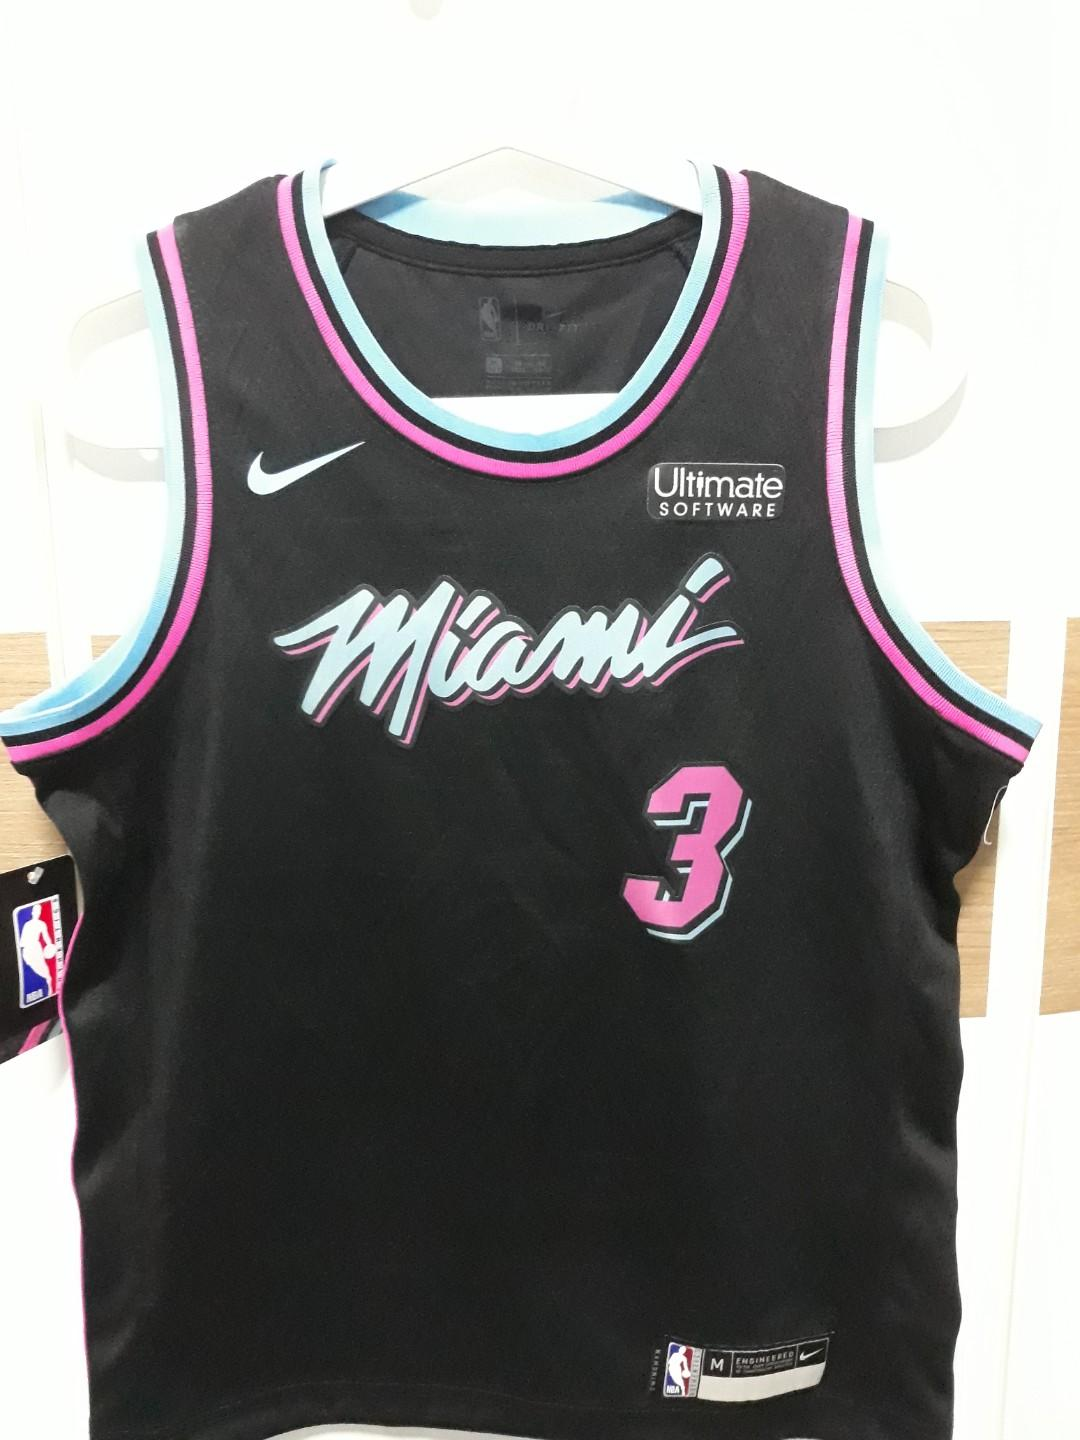 free shipping 8a09e 5ff6d Miami Heat Vice Night Swingman Jersey. Dwyane Wade 3, Sports ...